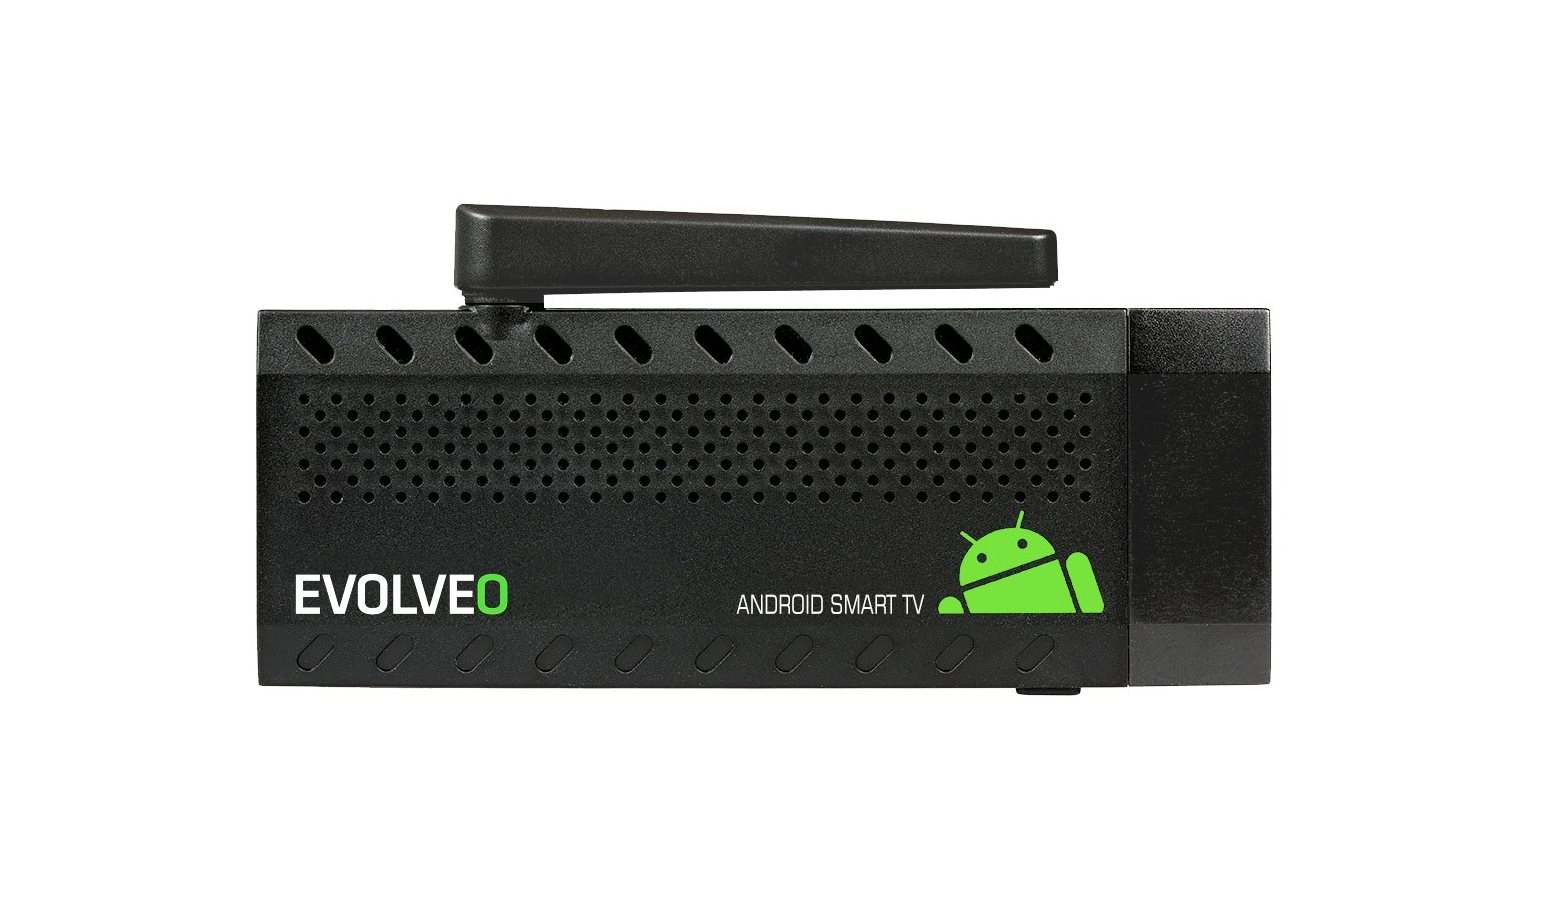 EVOLVEO Android Stick Q4, Quad Core Smart TV stick]